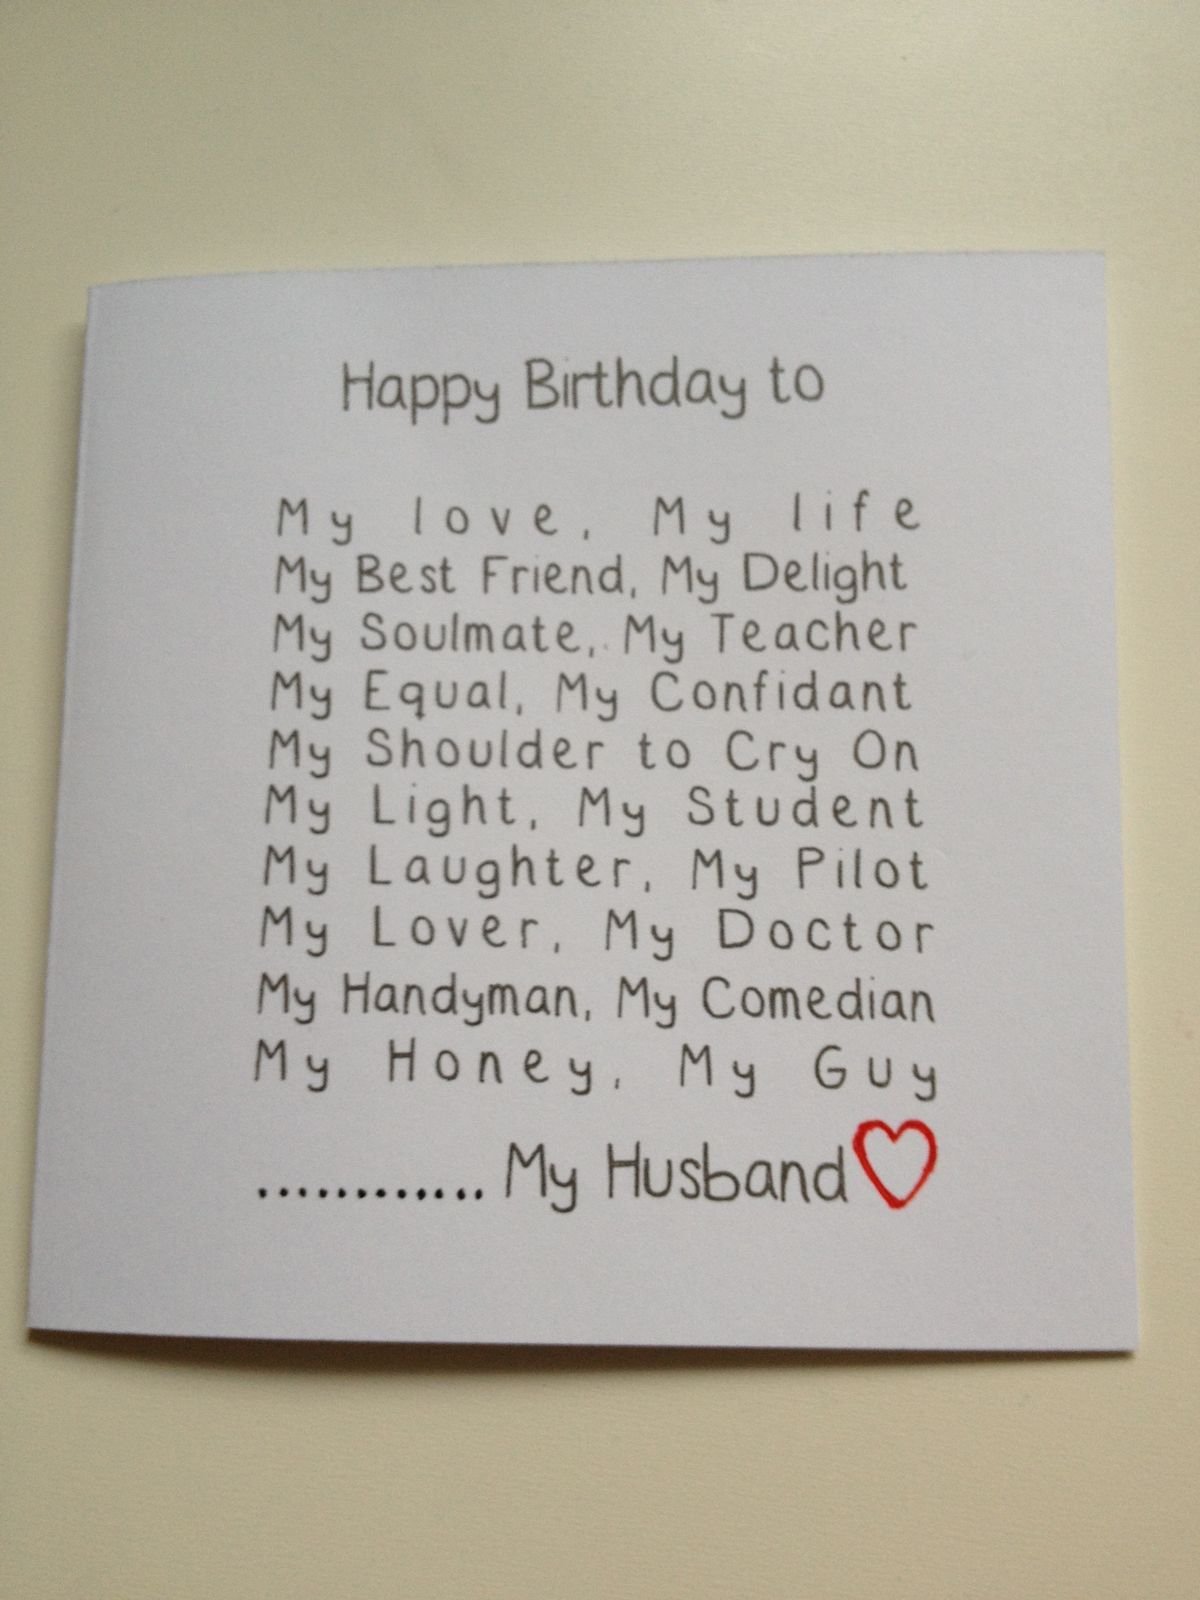 3b07f8c04afcbc9b45d3a0c363fed779 Jpg 1 200 600 Pixels Husband 30th Birthday Quotes For